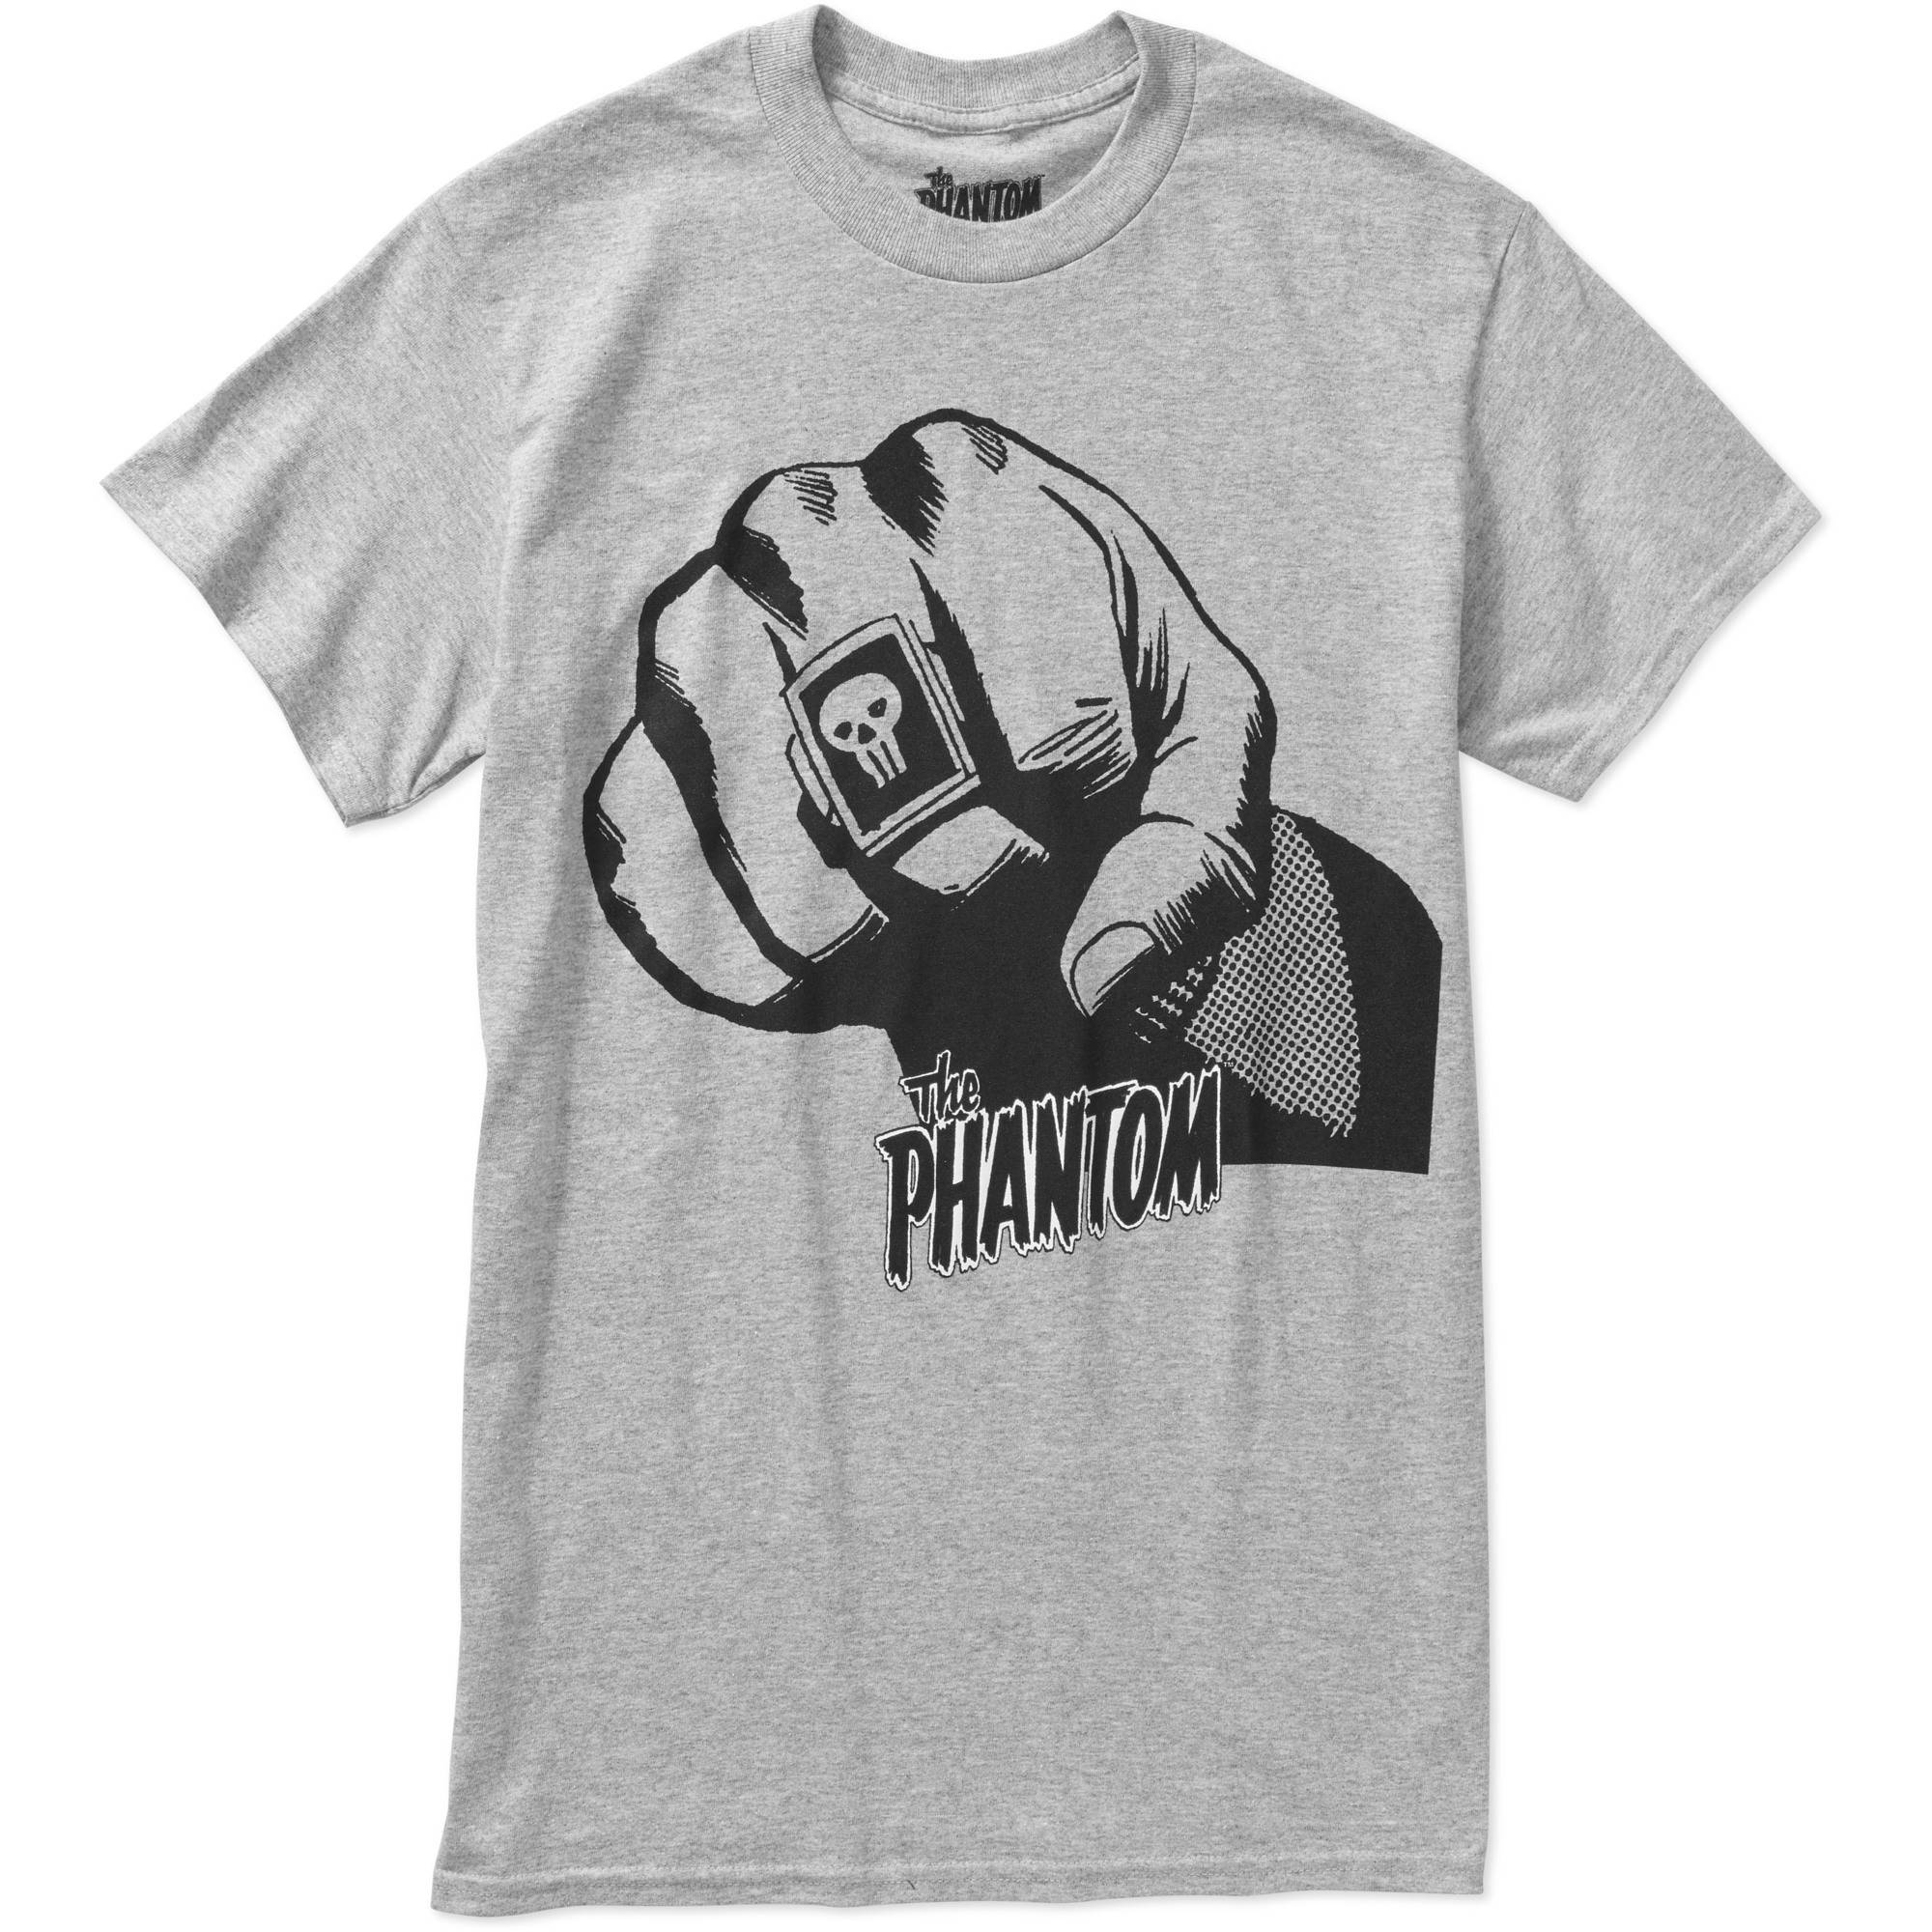 Movies and Television The Phantom Big Men's Graphic Tee, 2XL